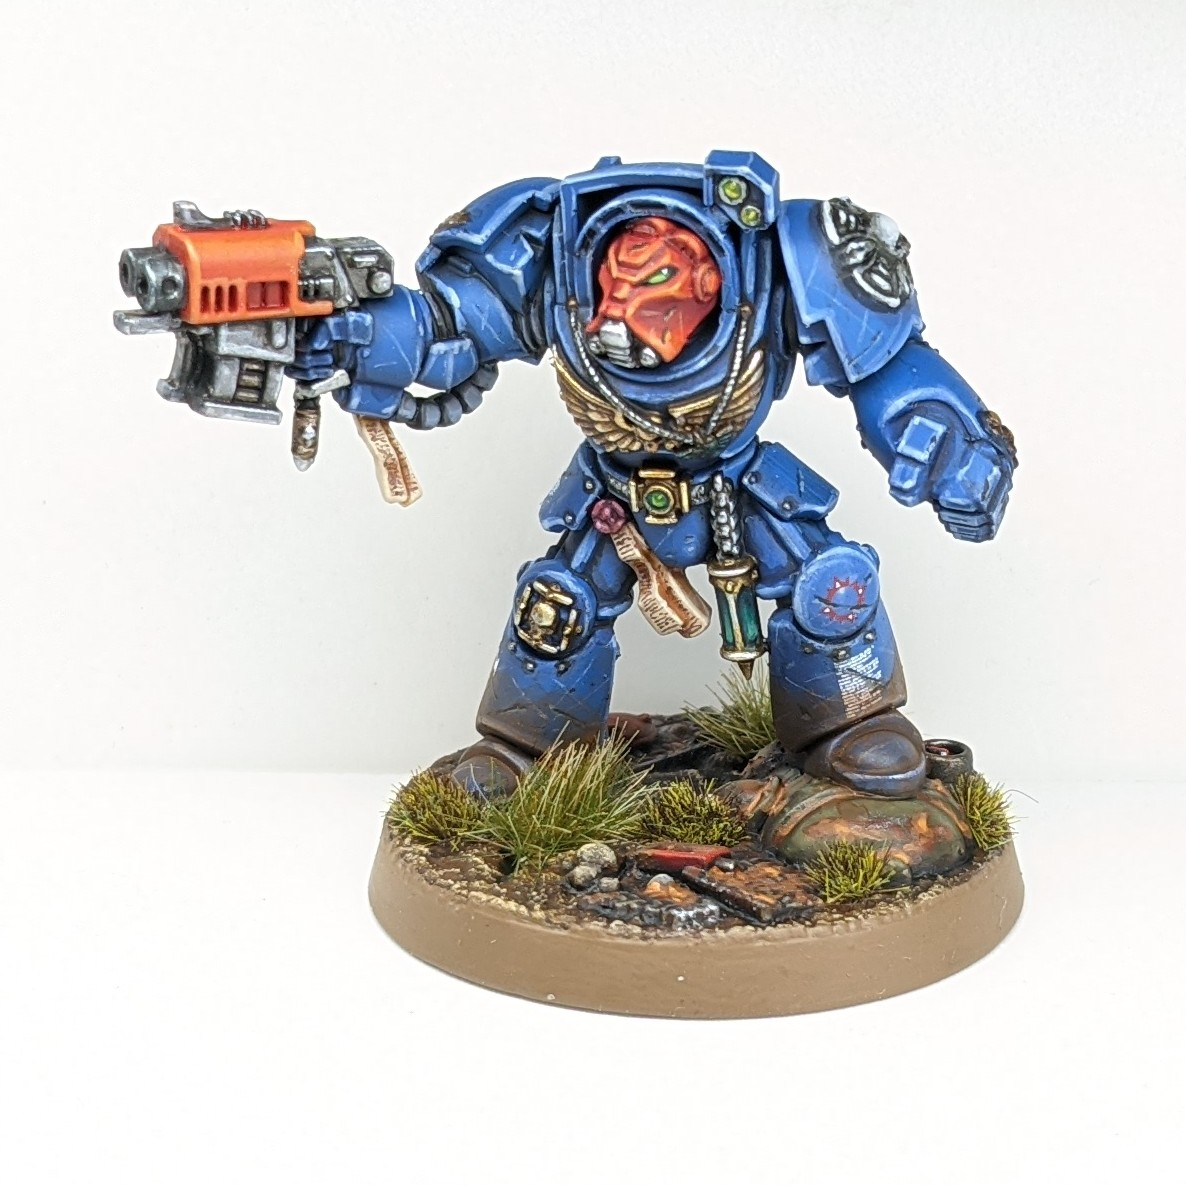 Model Ultramarine Terminator, a massively armoured warrior painted in blue, with a red helmet and weapon.